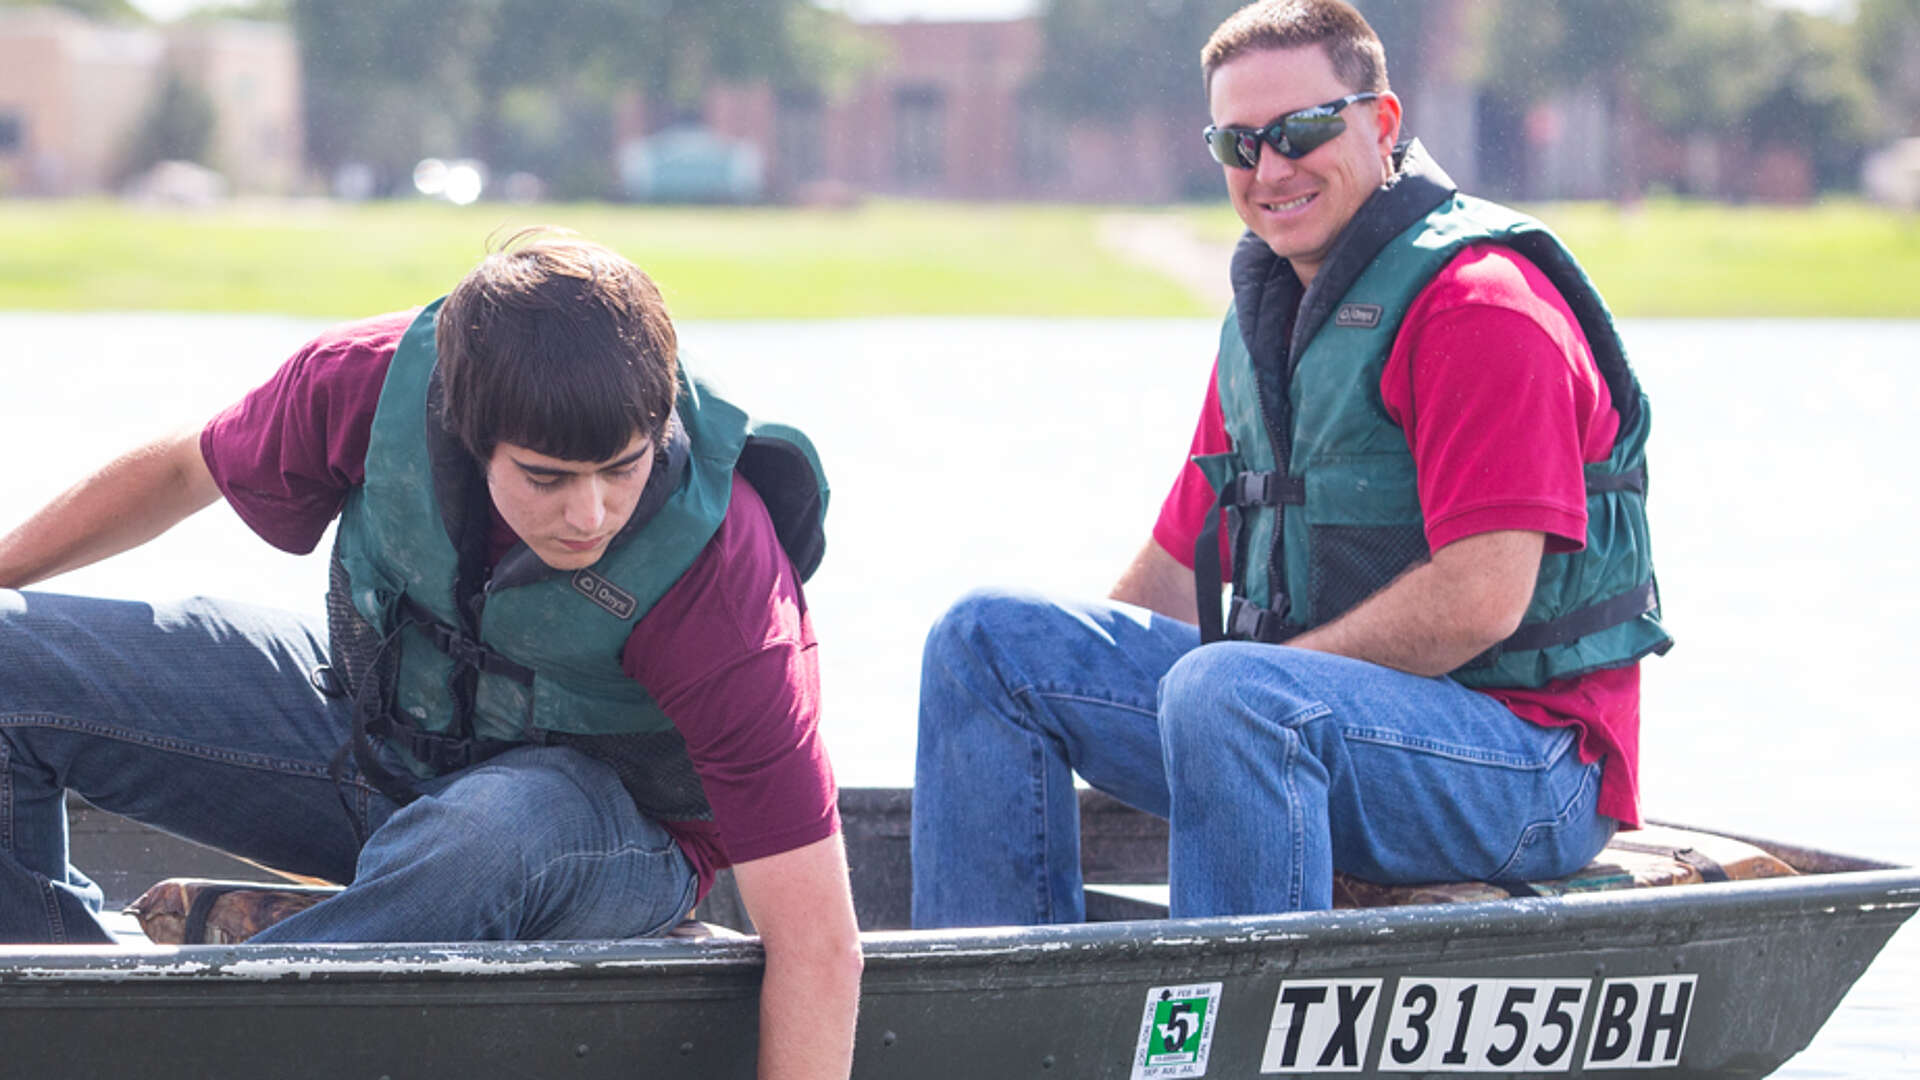 Dr. Bart Durham and student in boat